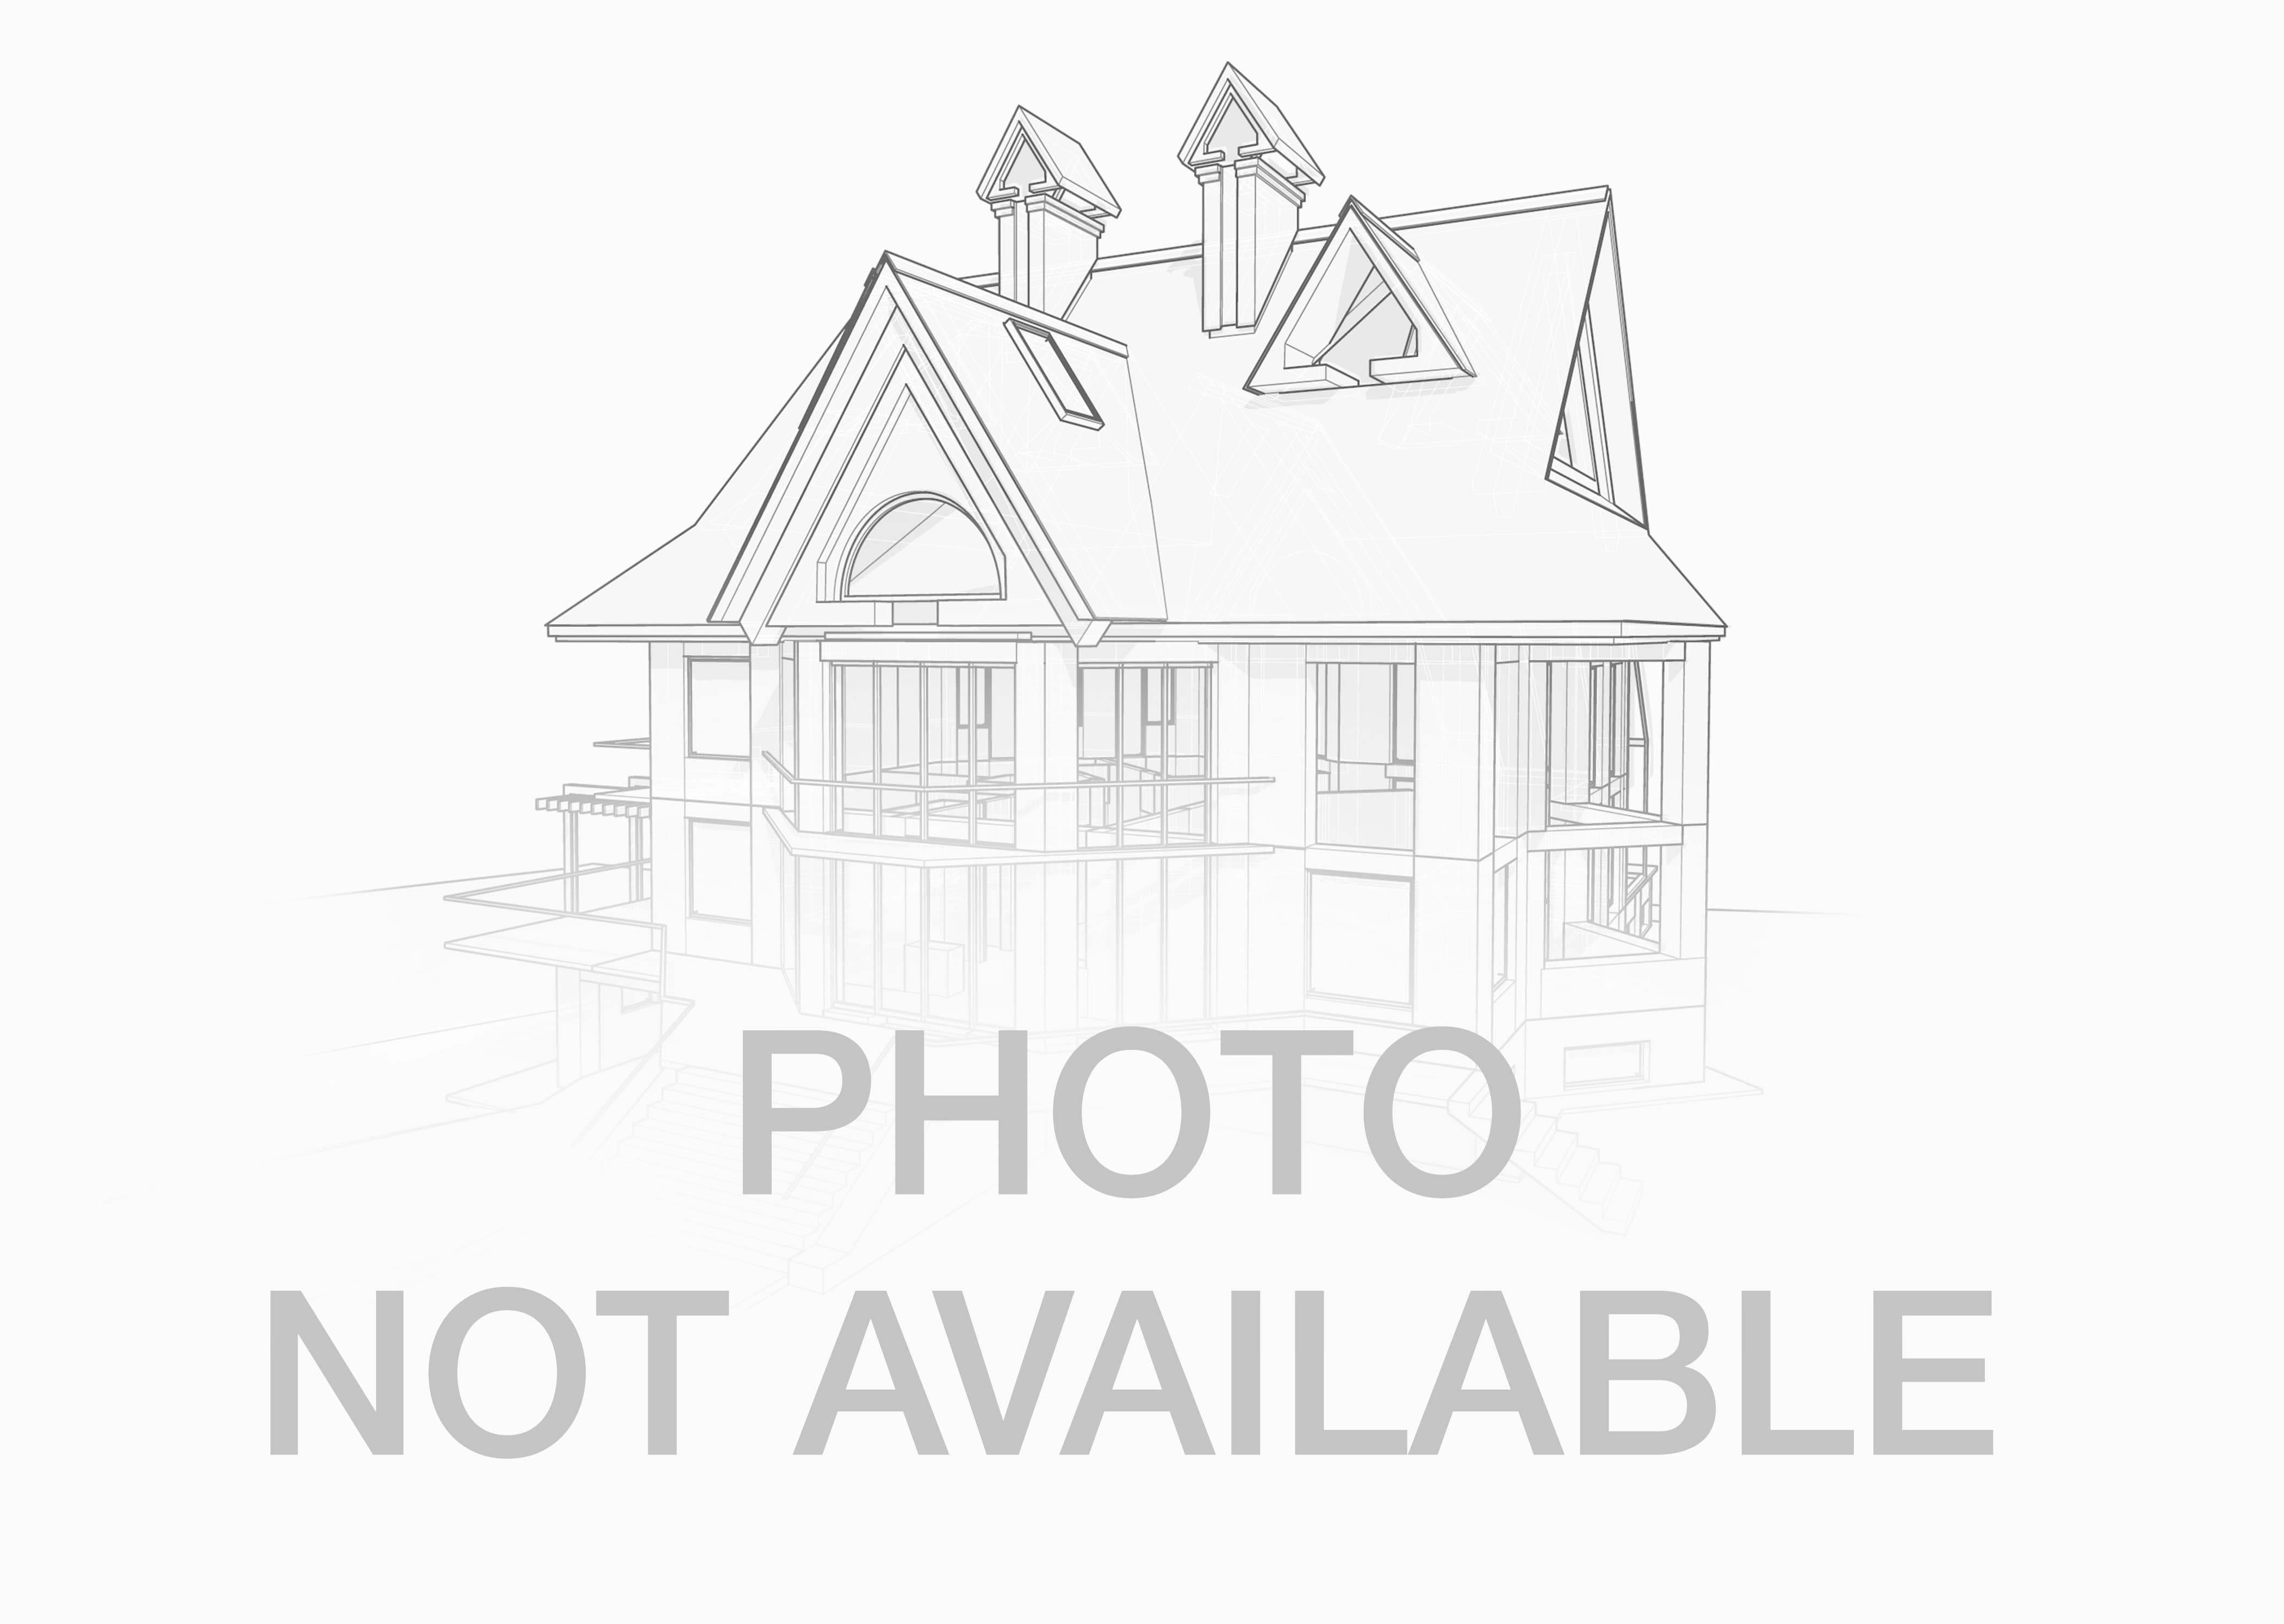 Listings Search Results from Tim Clouser with RE/MAX Realty